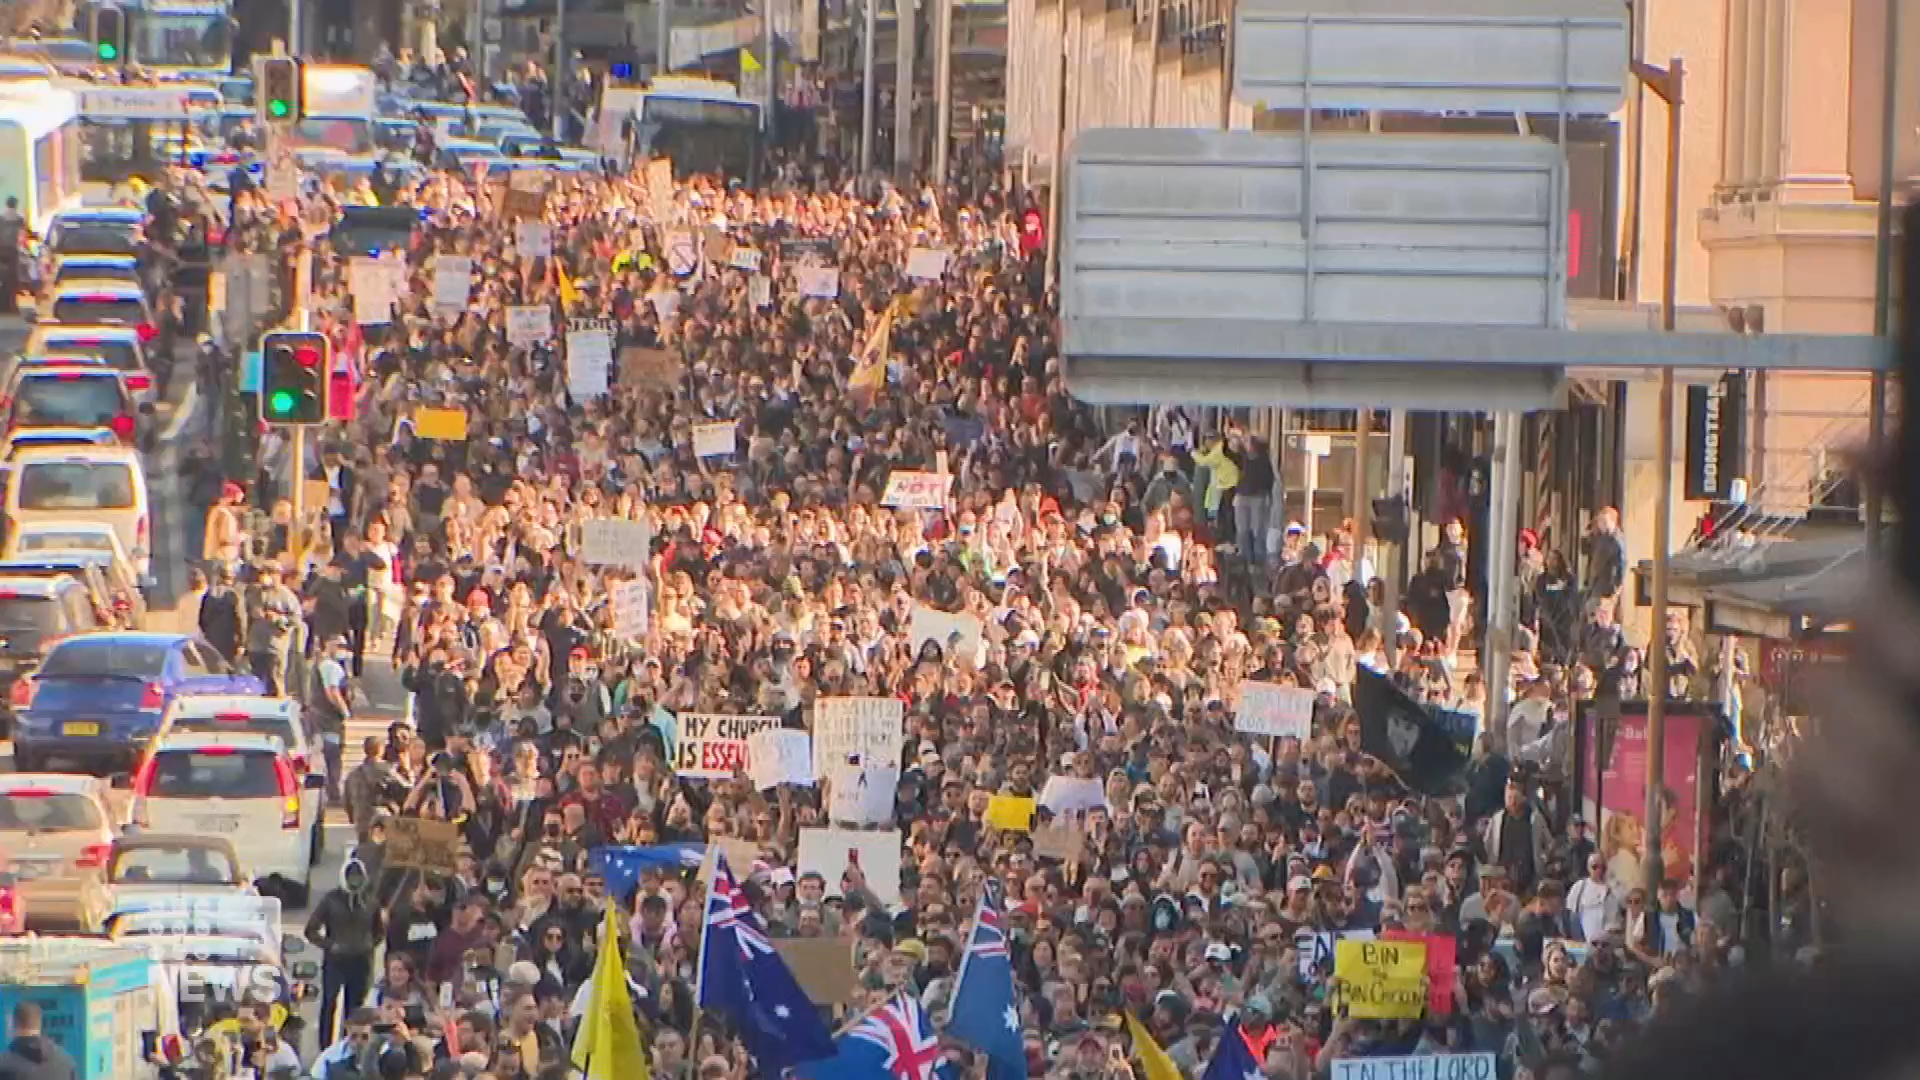 Chaos as thousands gather for anti-lockdown protests